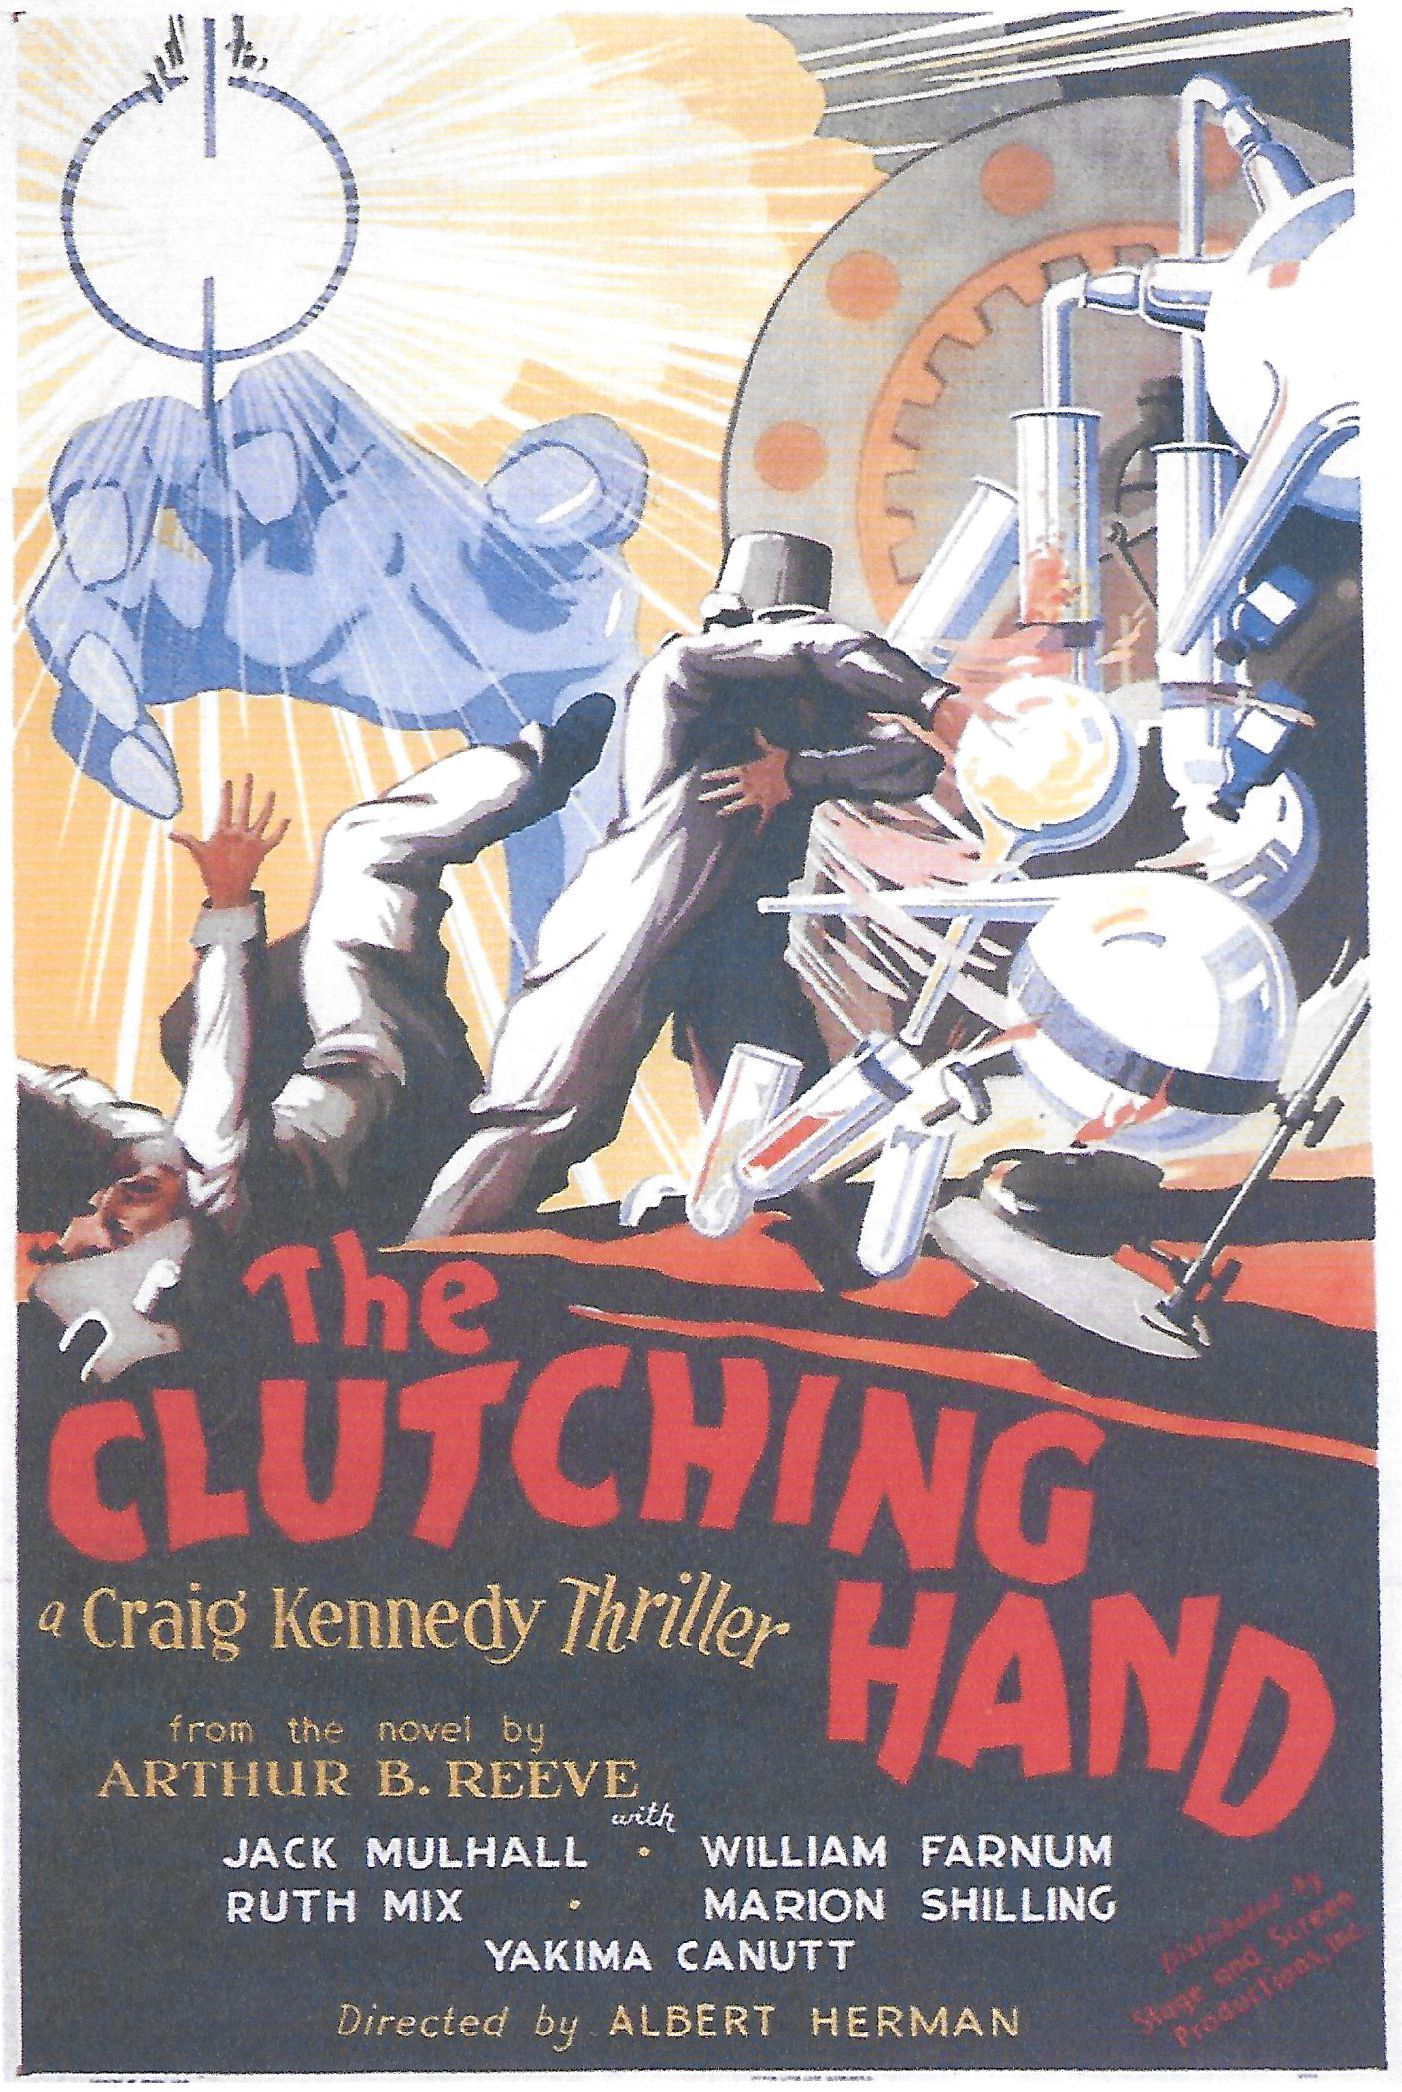 Download The Amazing Exploits of the Clutching Hand Full-Movie Free